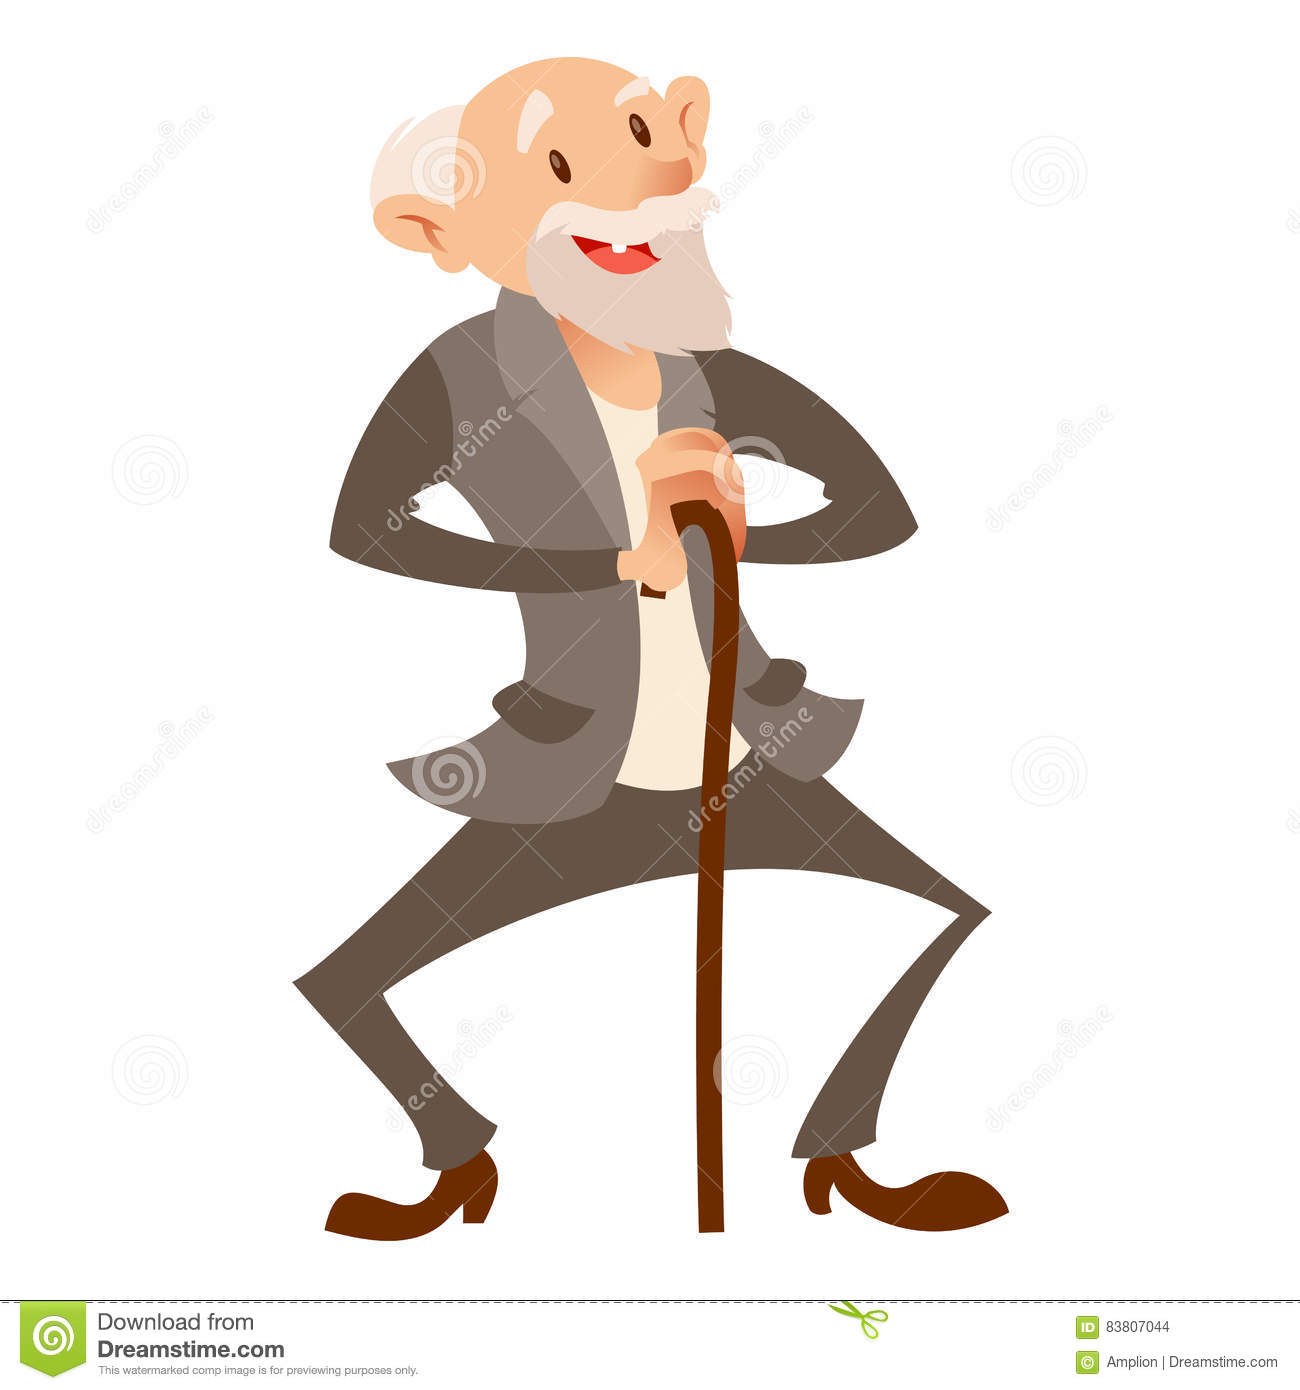 happy-old-man-vector-image-flat-83807044